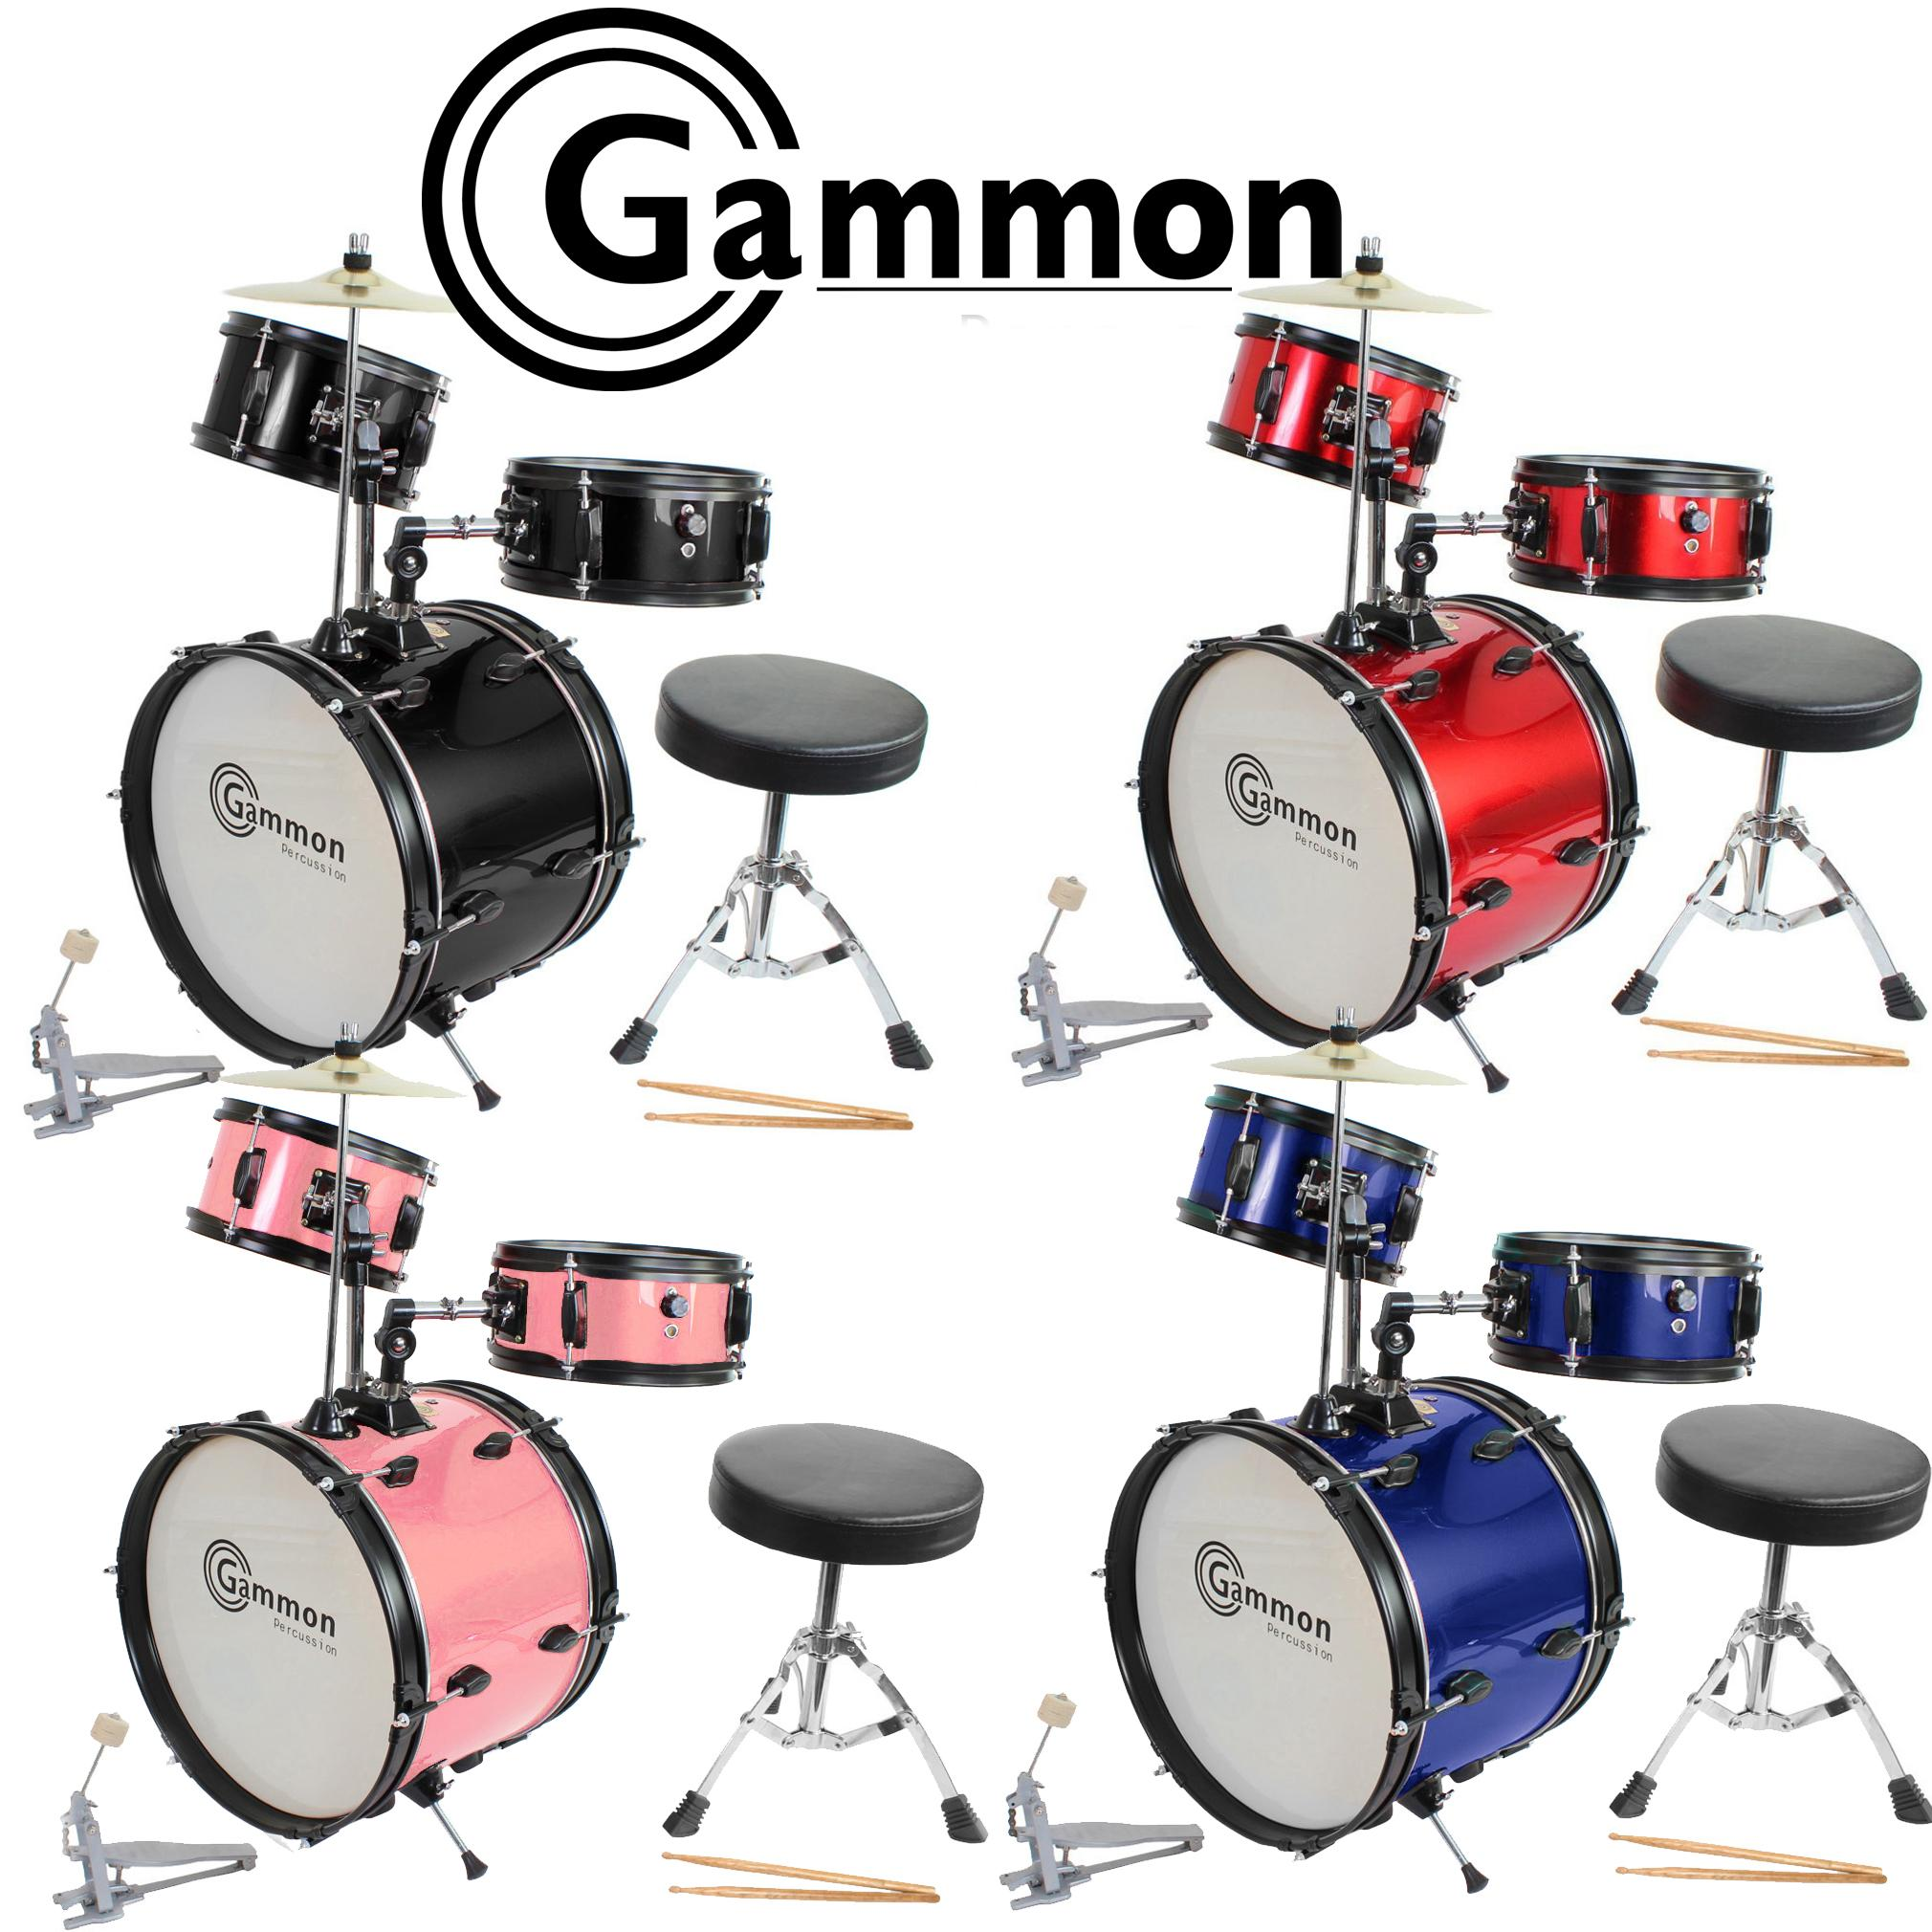 Complete Junior Drum Set with Sticks and Stool  sc 1 st  Amazon.com & Amazon.com: Blue Drum Set Junior Kids Kit Complete with Cymbal ... islam-shia.org